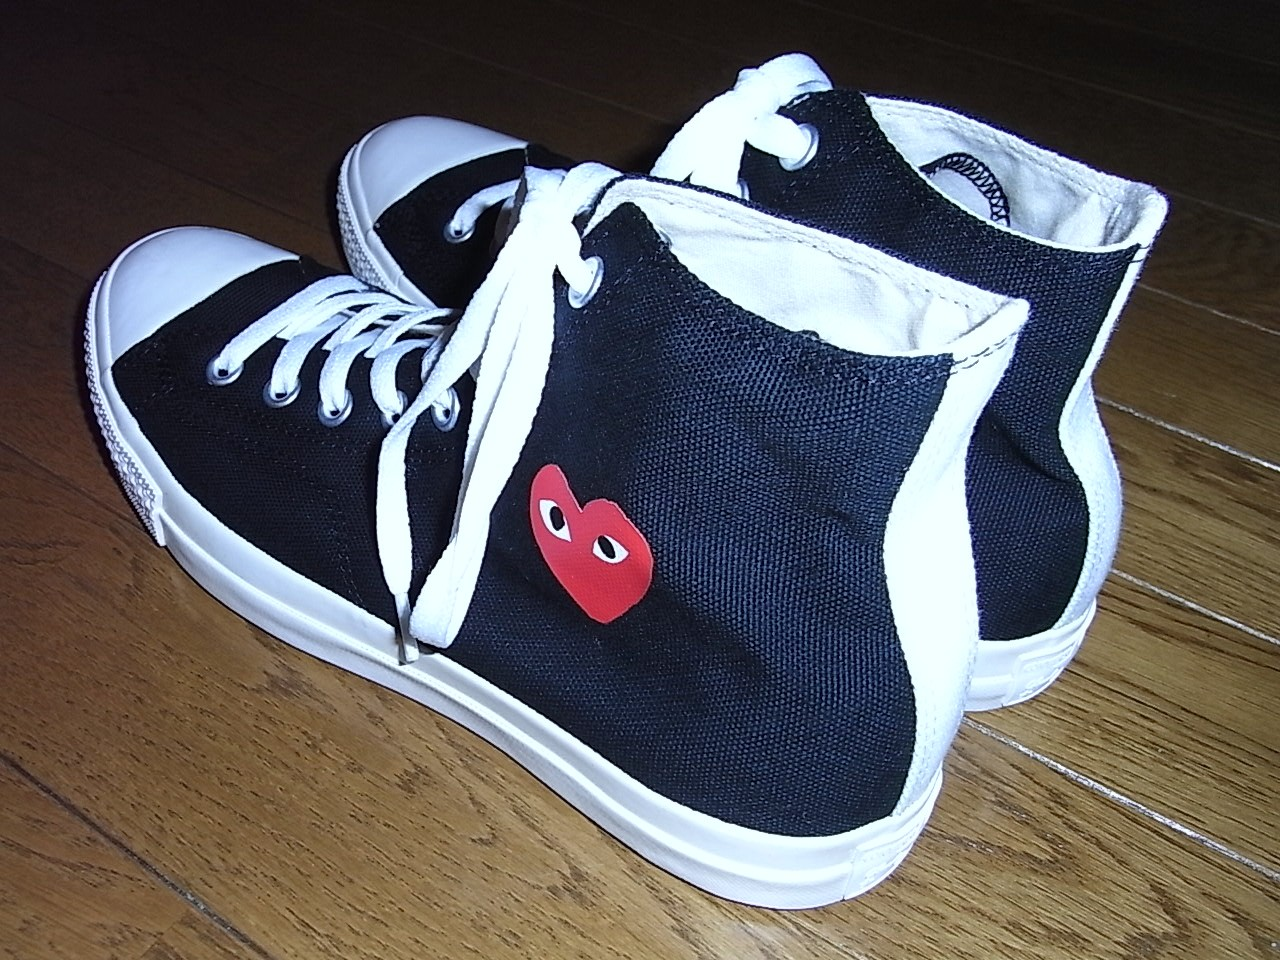 PLAY COMME des GARCONS x CONVERSE ALL STAR_f0010106_23543212.jpg